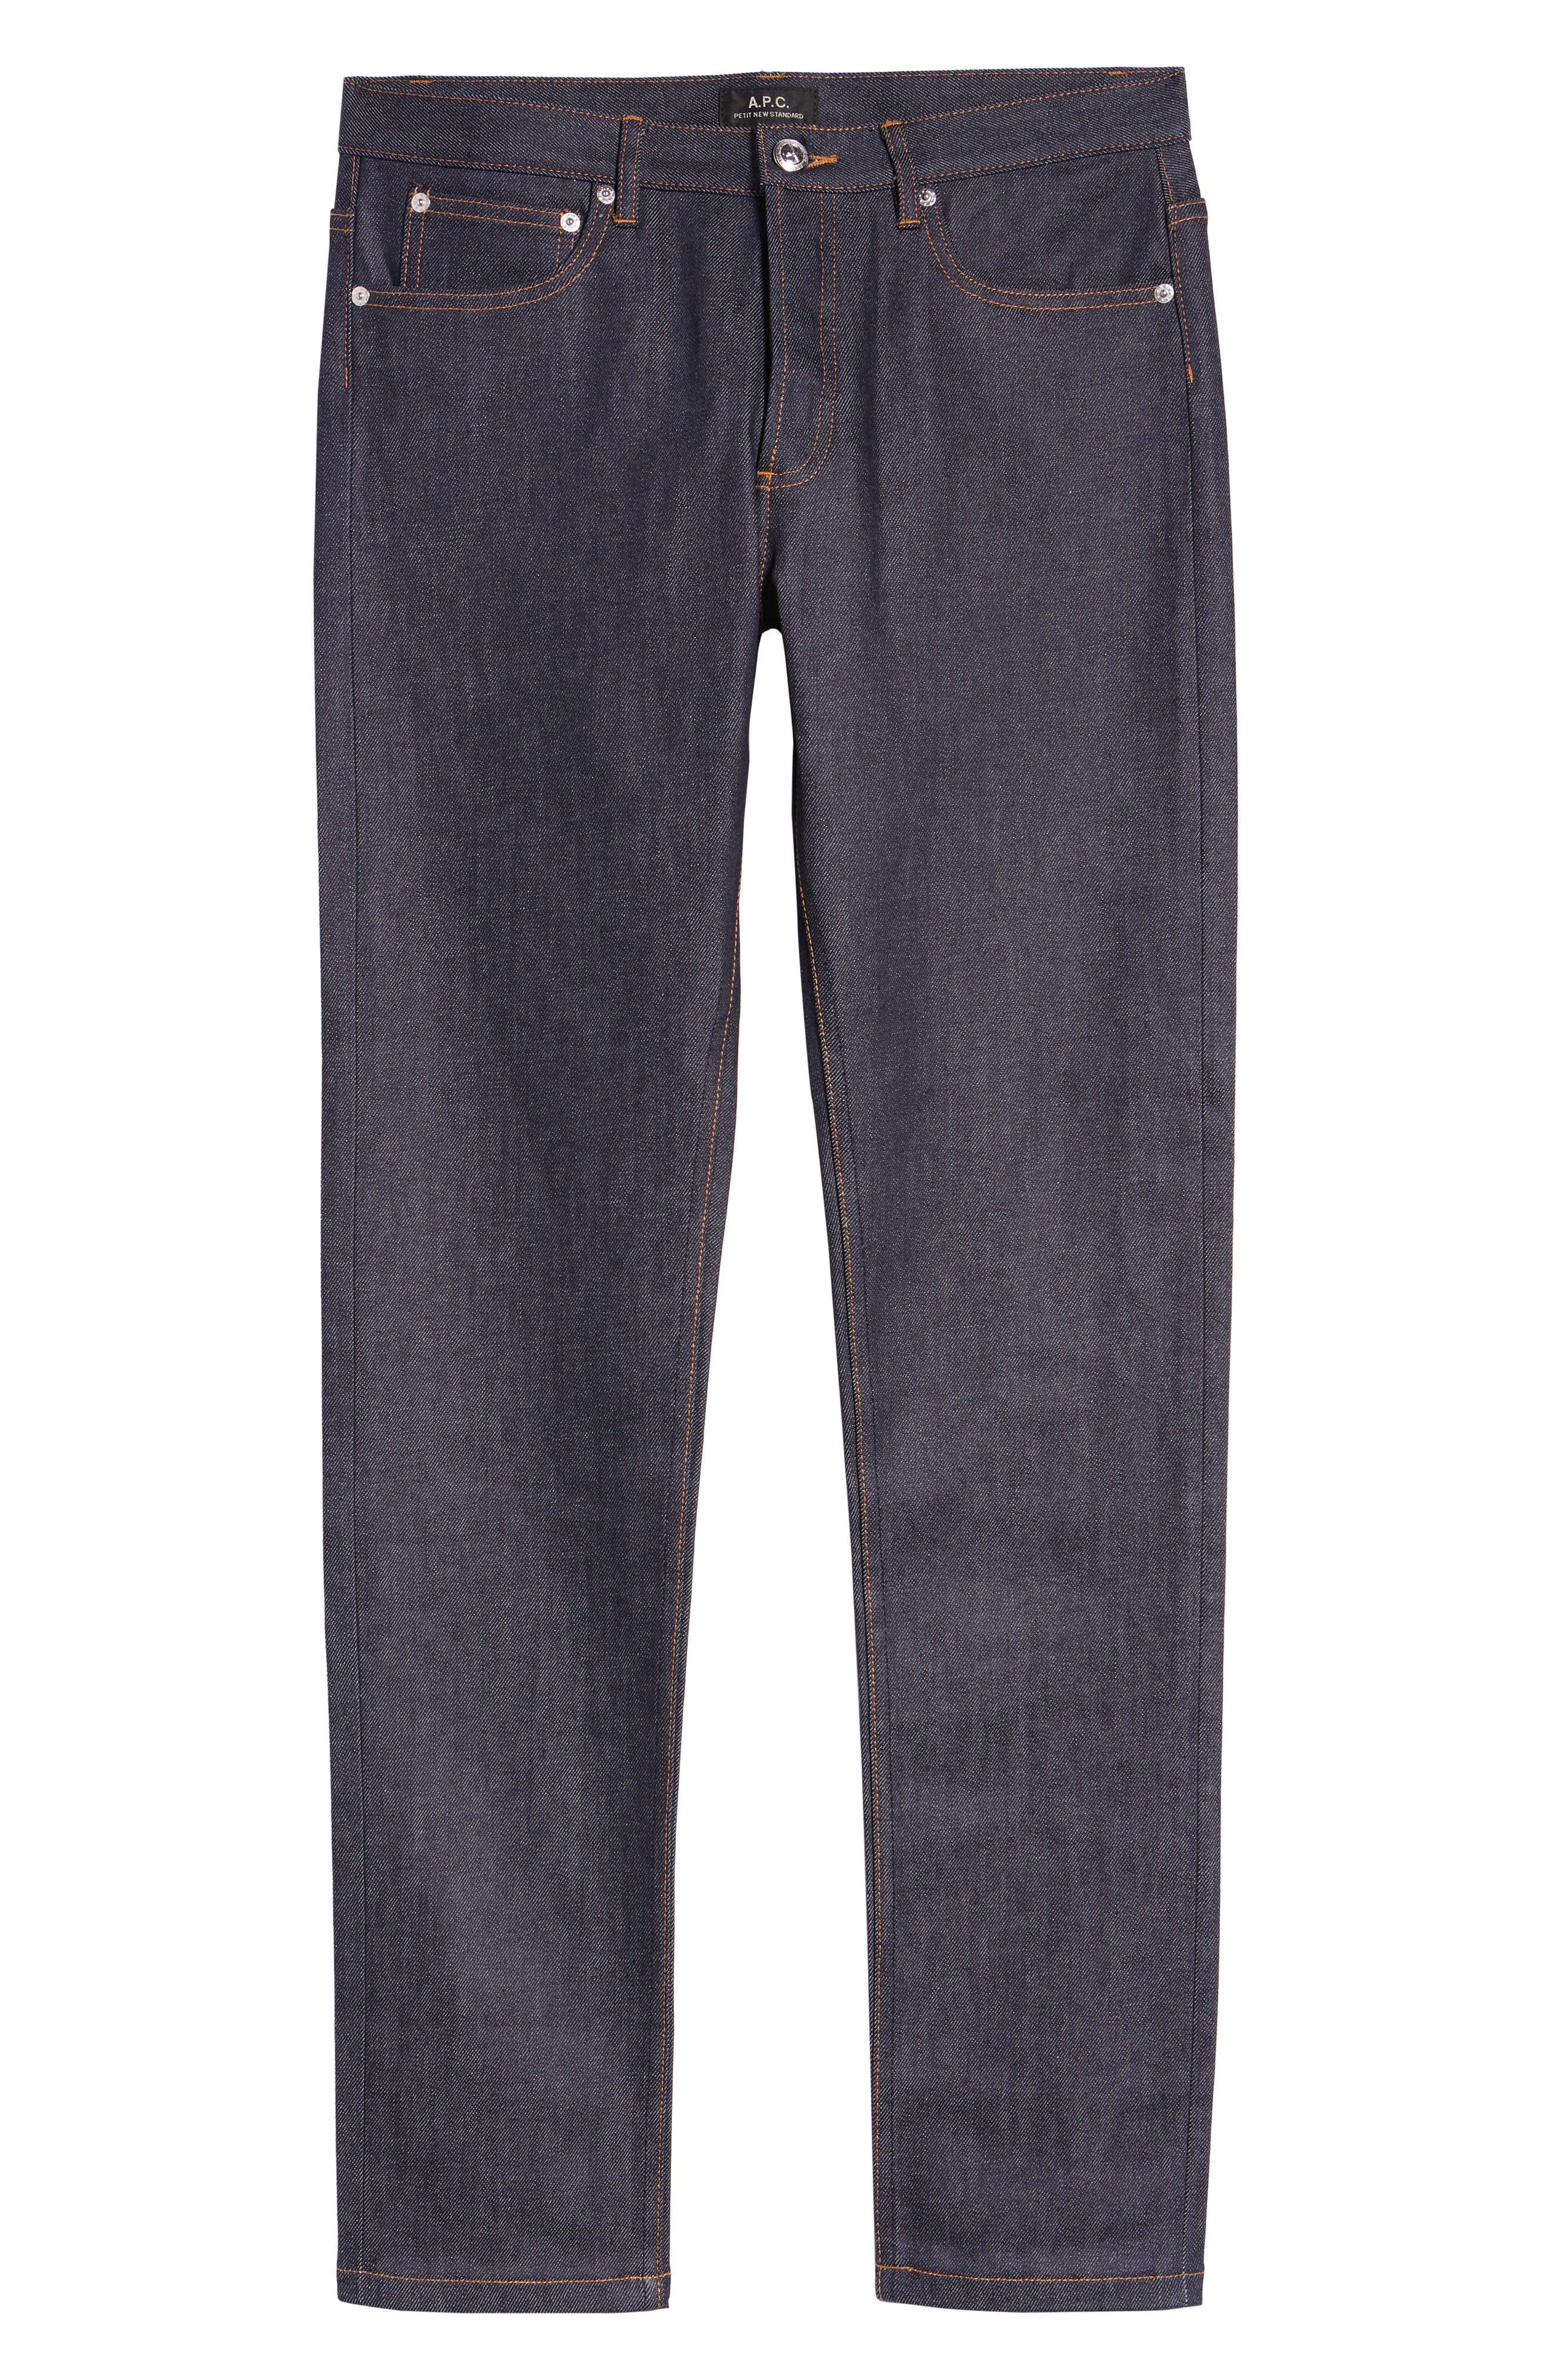 A.P.C., Petite New Standard Skinny Fit Jeans, Alternate thumbnail 2, color, INDIGO